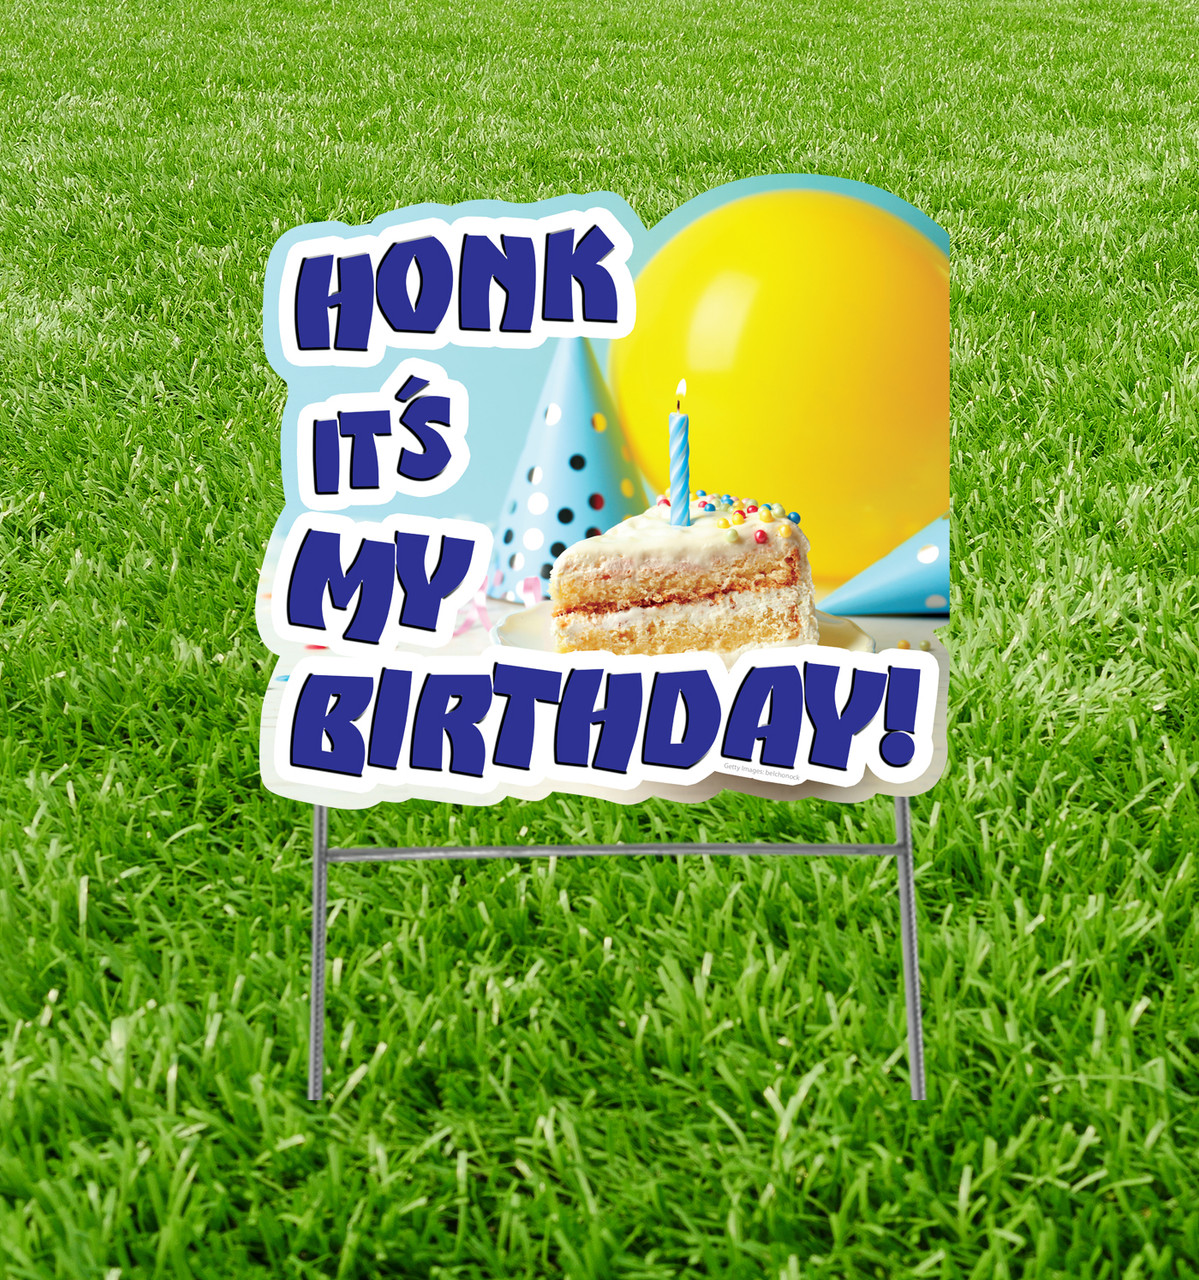 "Honk It's My Birthday Cake Yard Sign 23"" x 25"" with background."